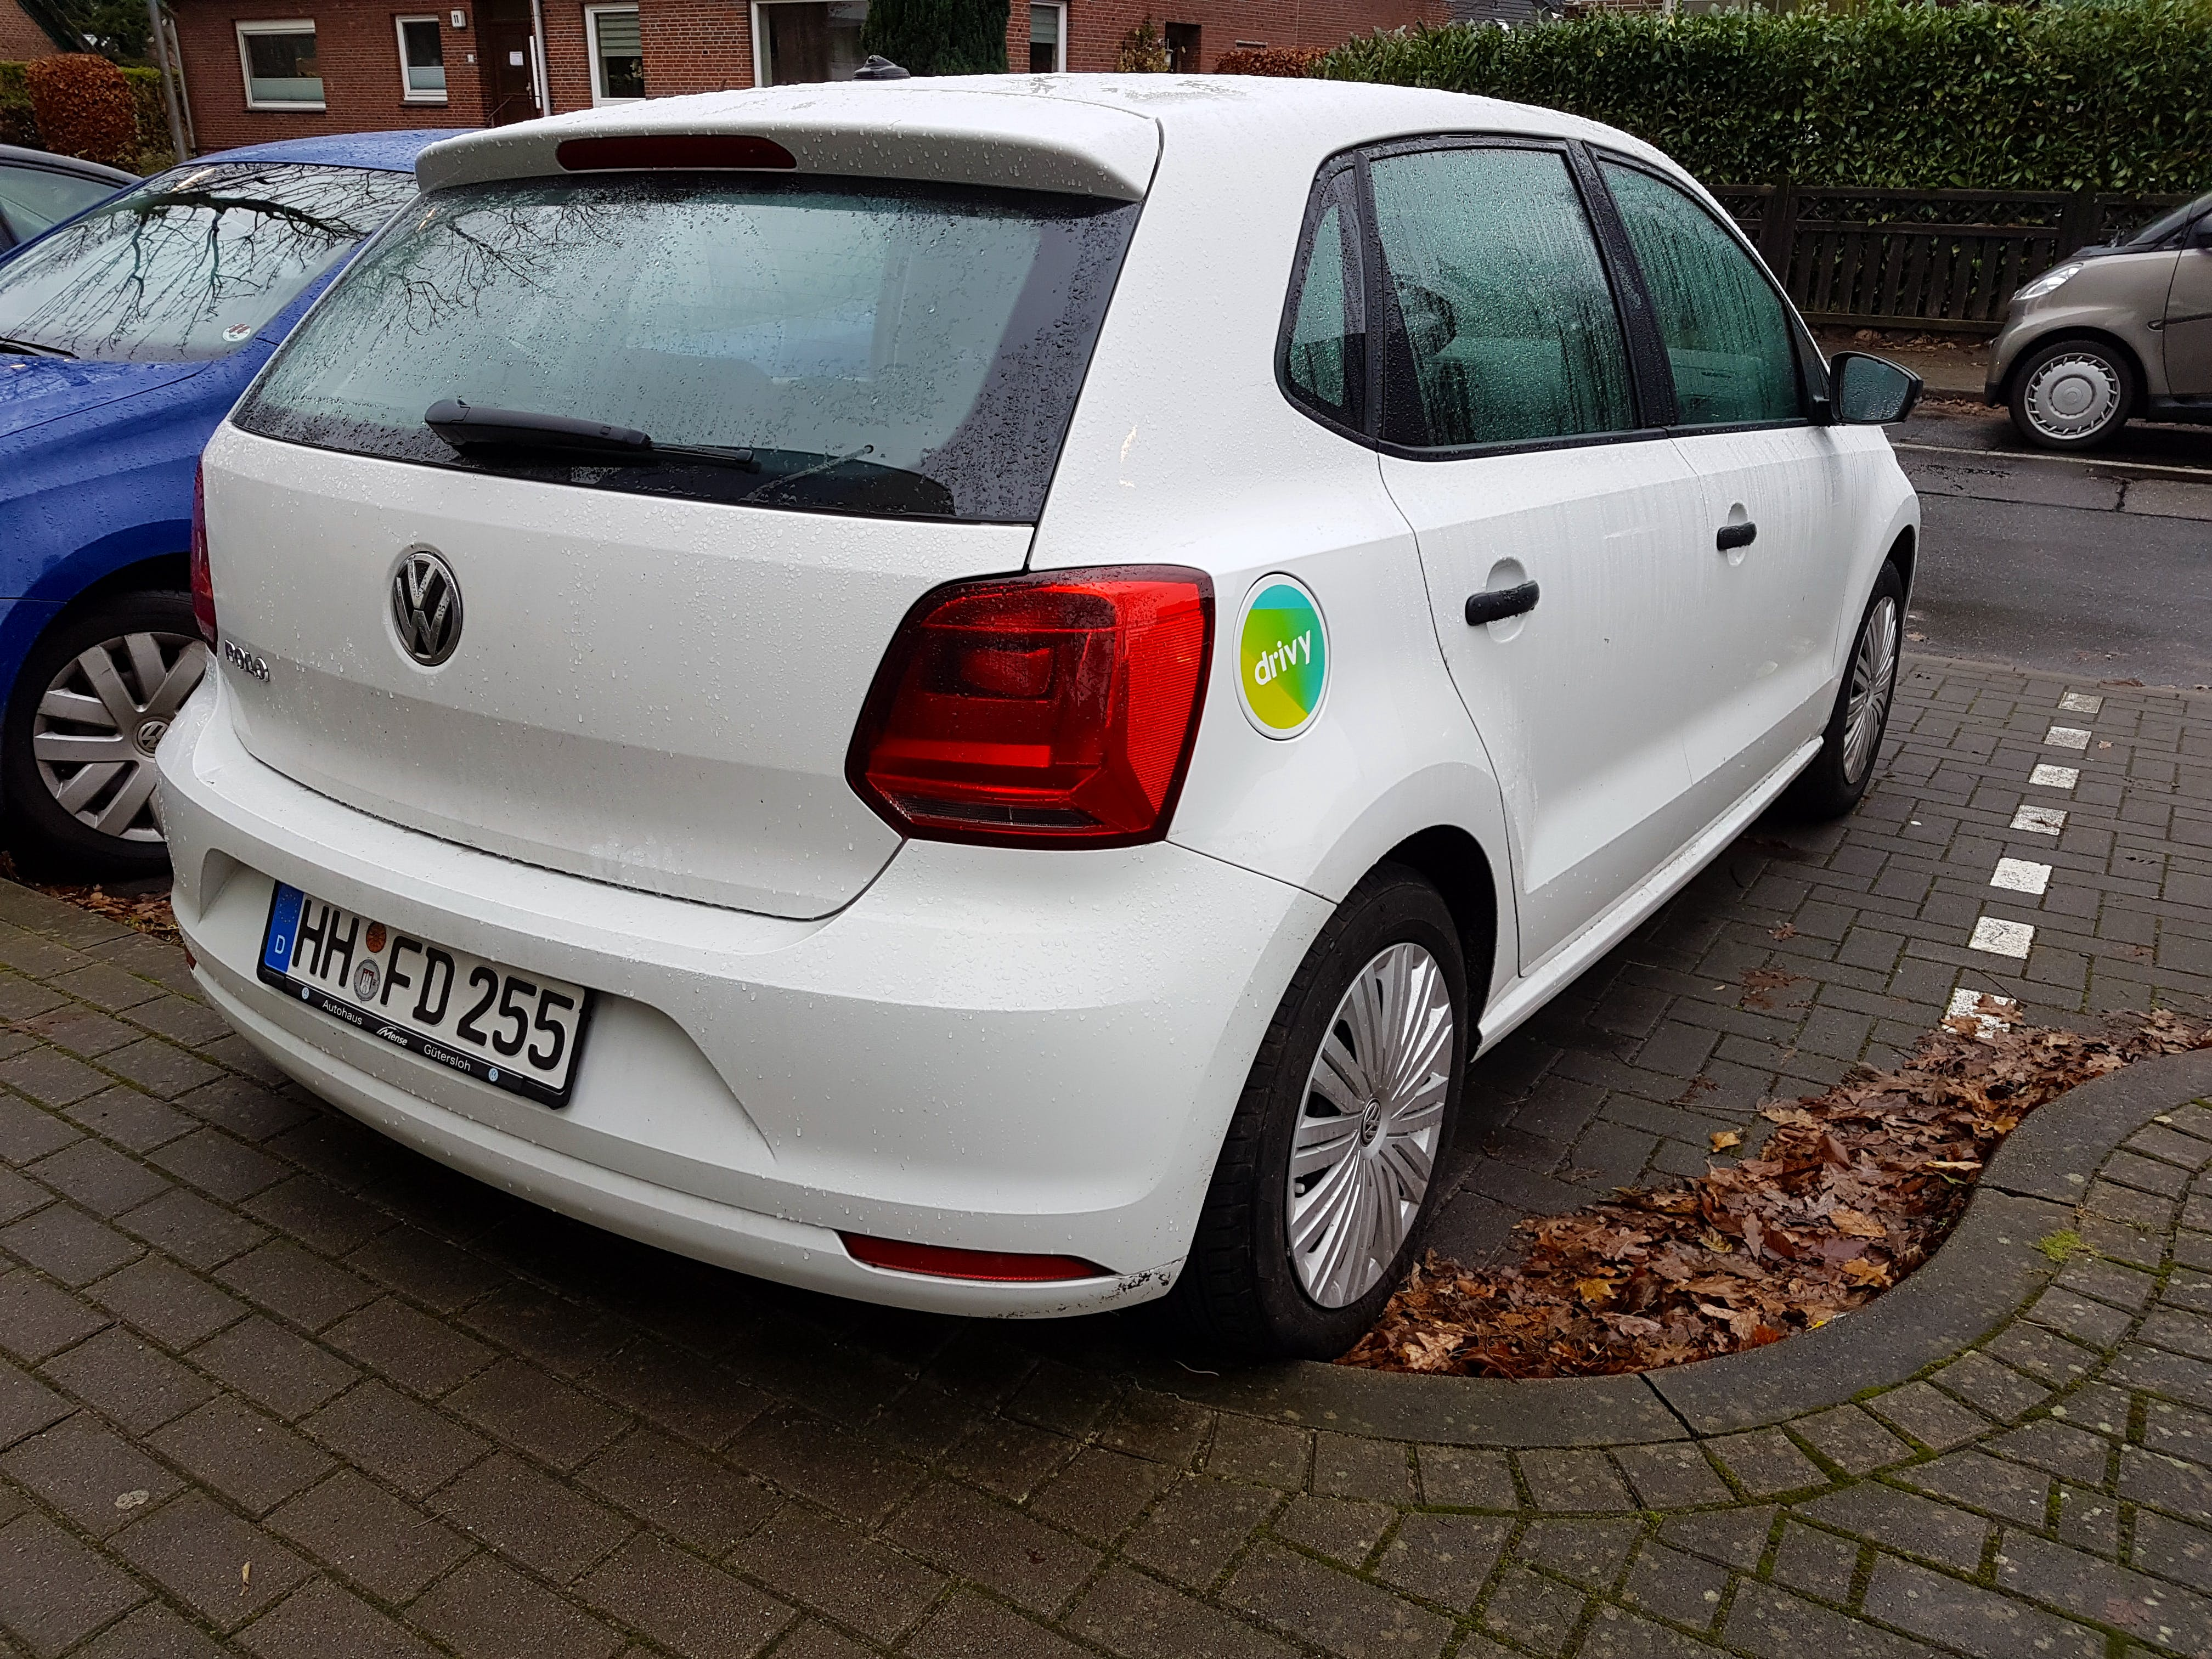 Volkswagen Polo 255 mit Audio-/iPod-Zugang